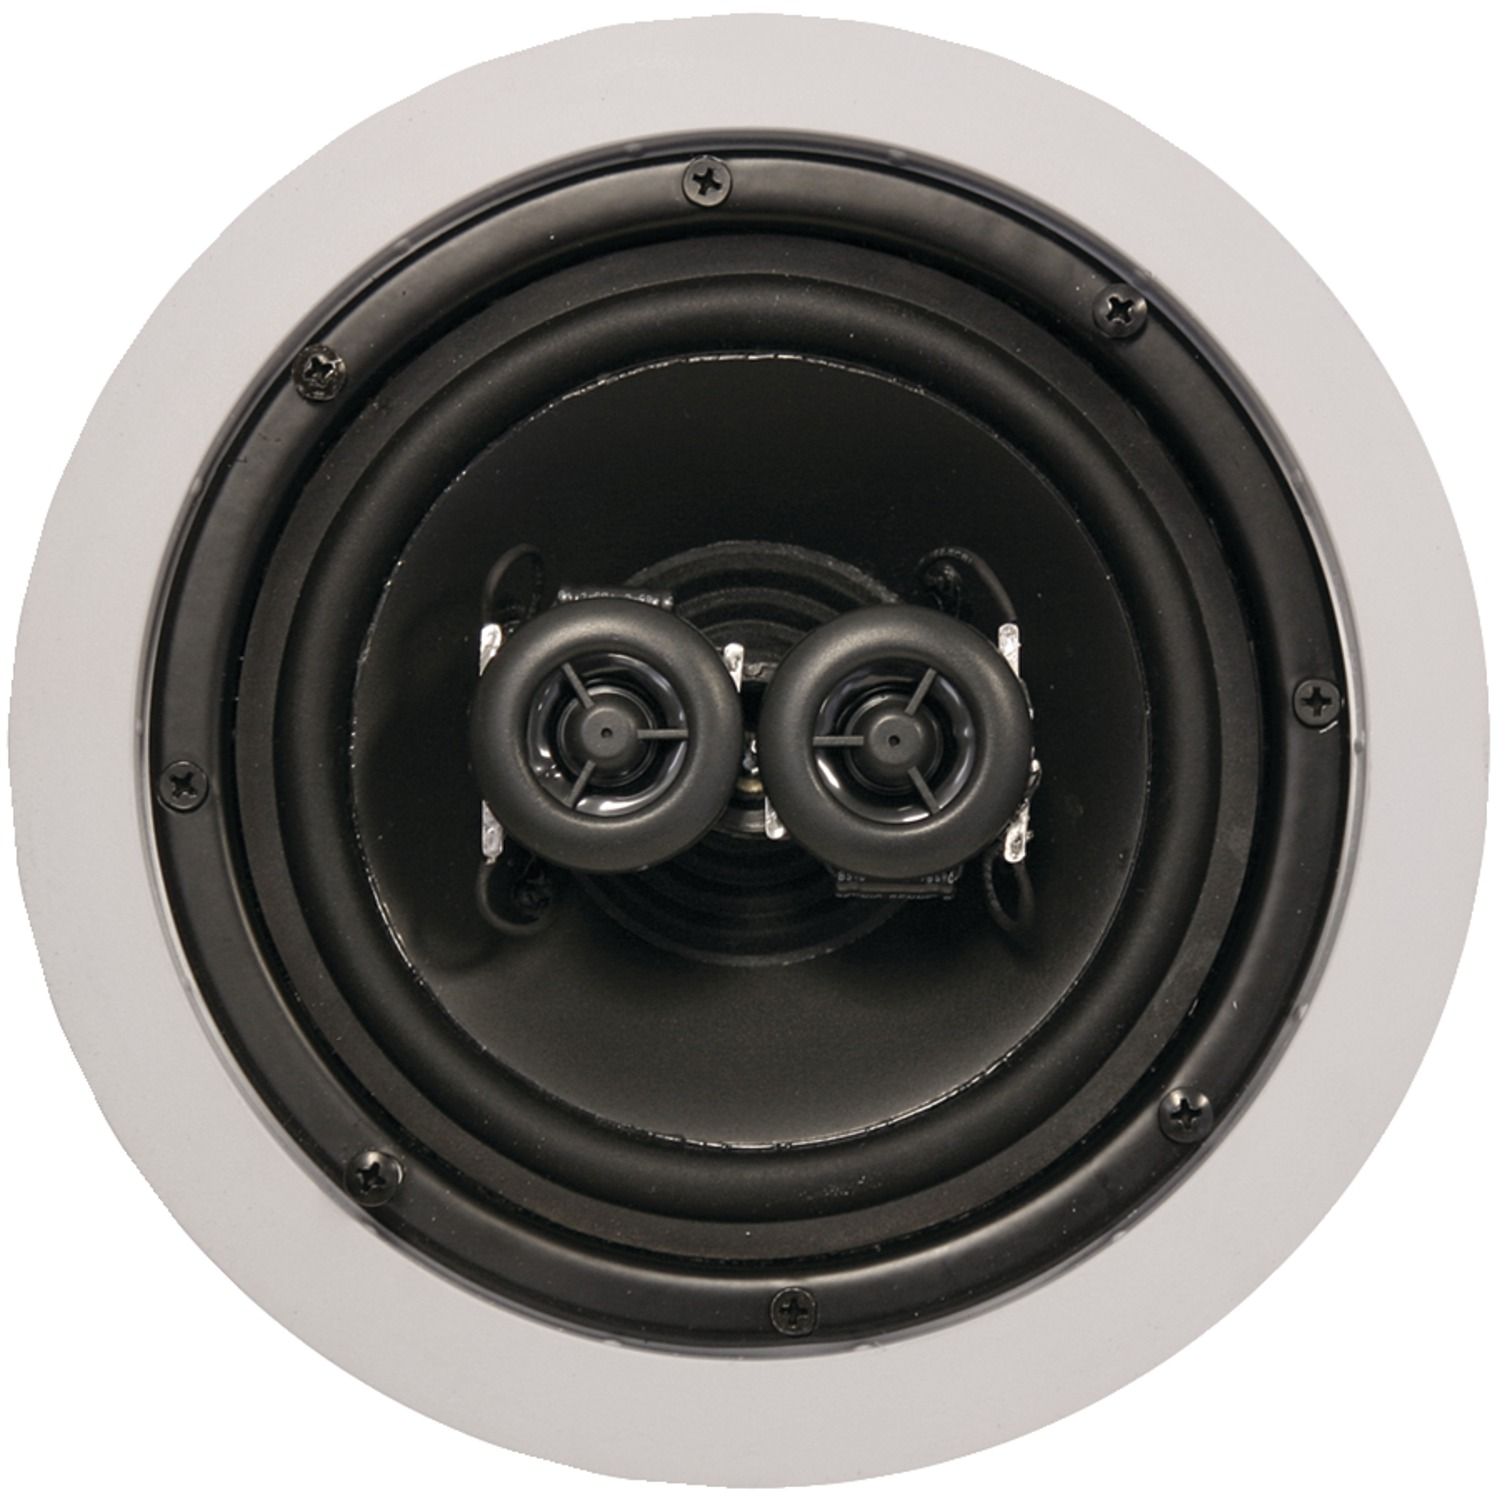 "ArchiTech AP-611 6.5"" 2-way Single-point Stereo In-ceiling Loudspeaker"